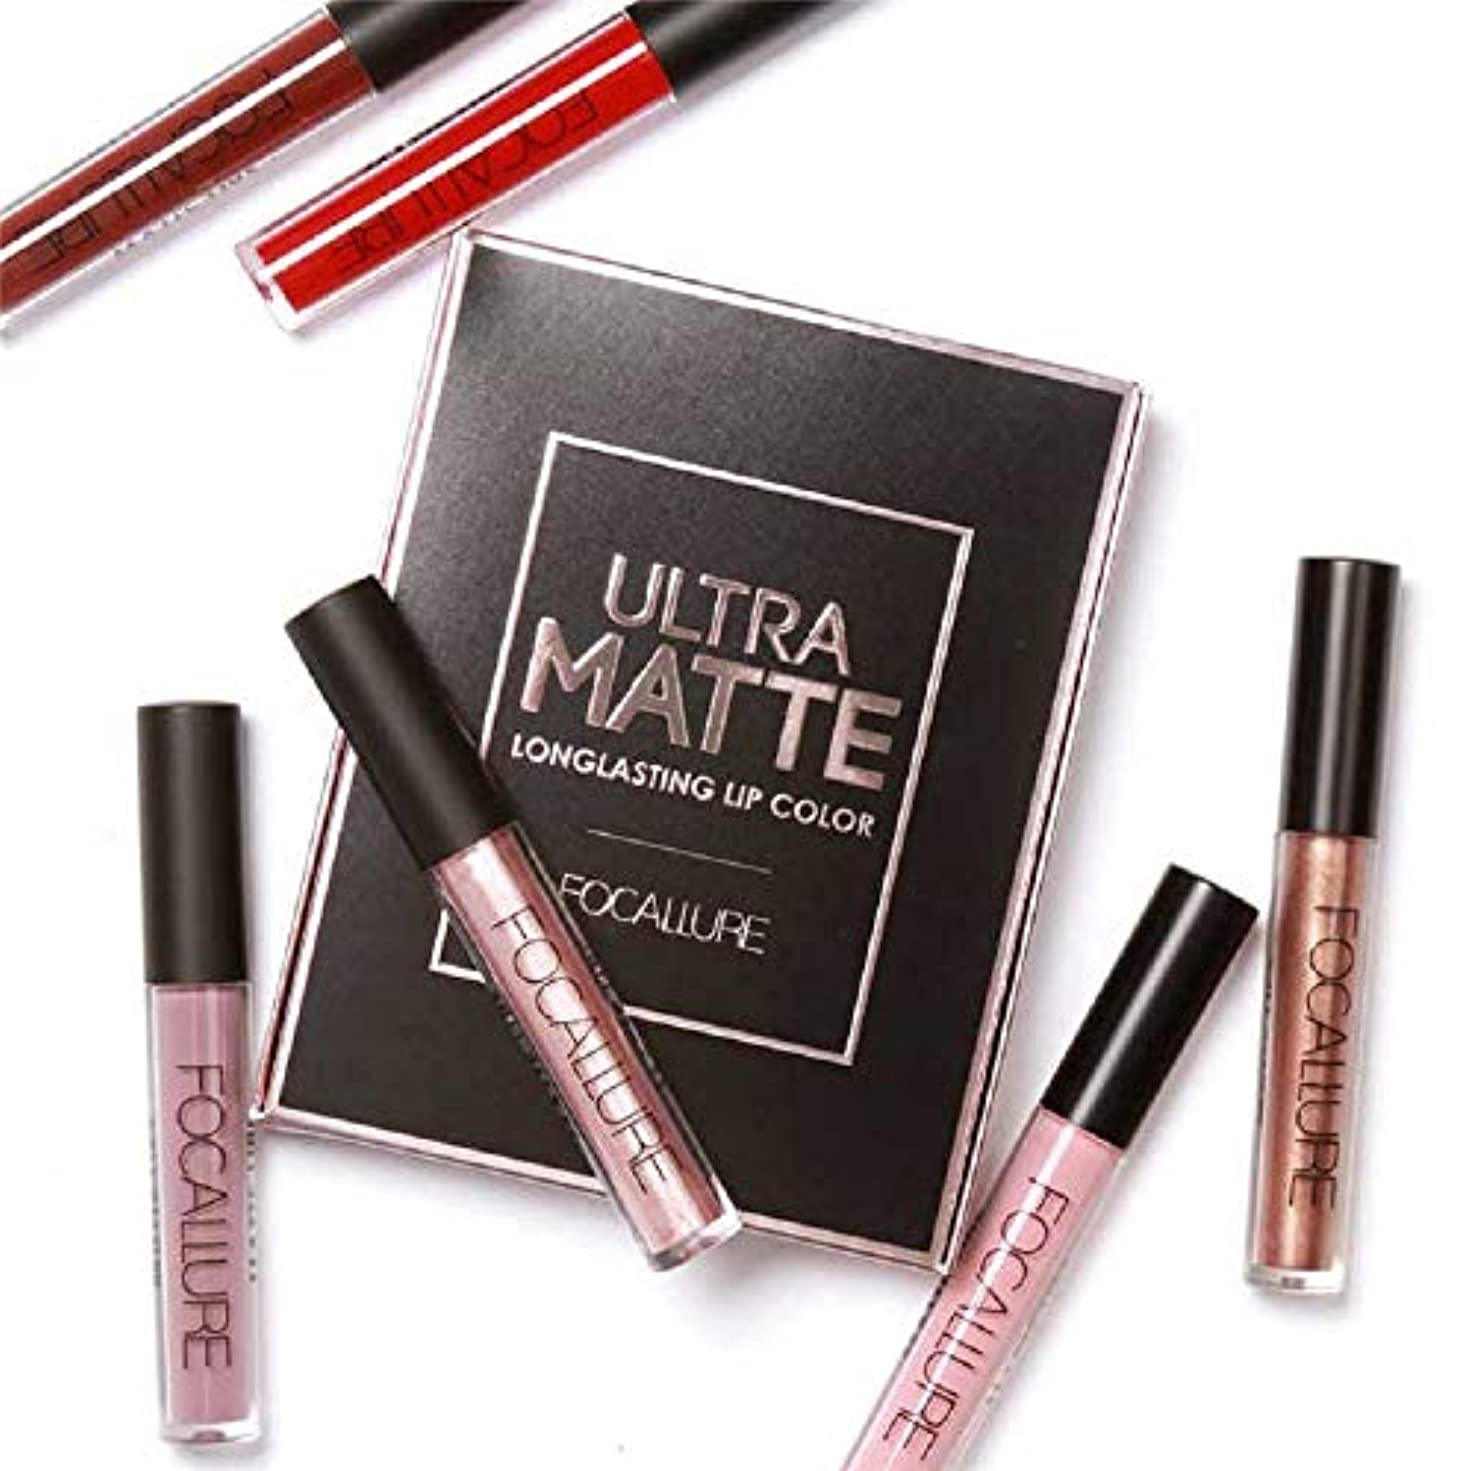 知る迷惑失礼な3Pcs/Set Long-lasting Lip Colors Makeup Waterproof Tint Lip Gloss Red Velvet Ultra Nude Matte Lipstick Set リップカラーメーキャップ...